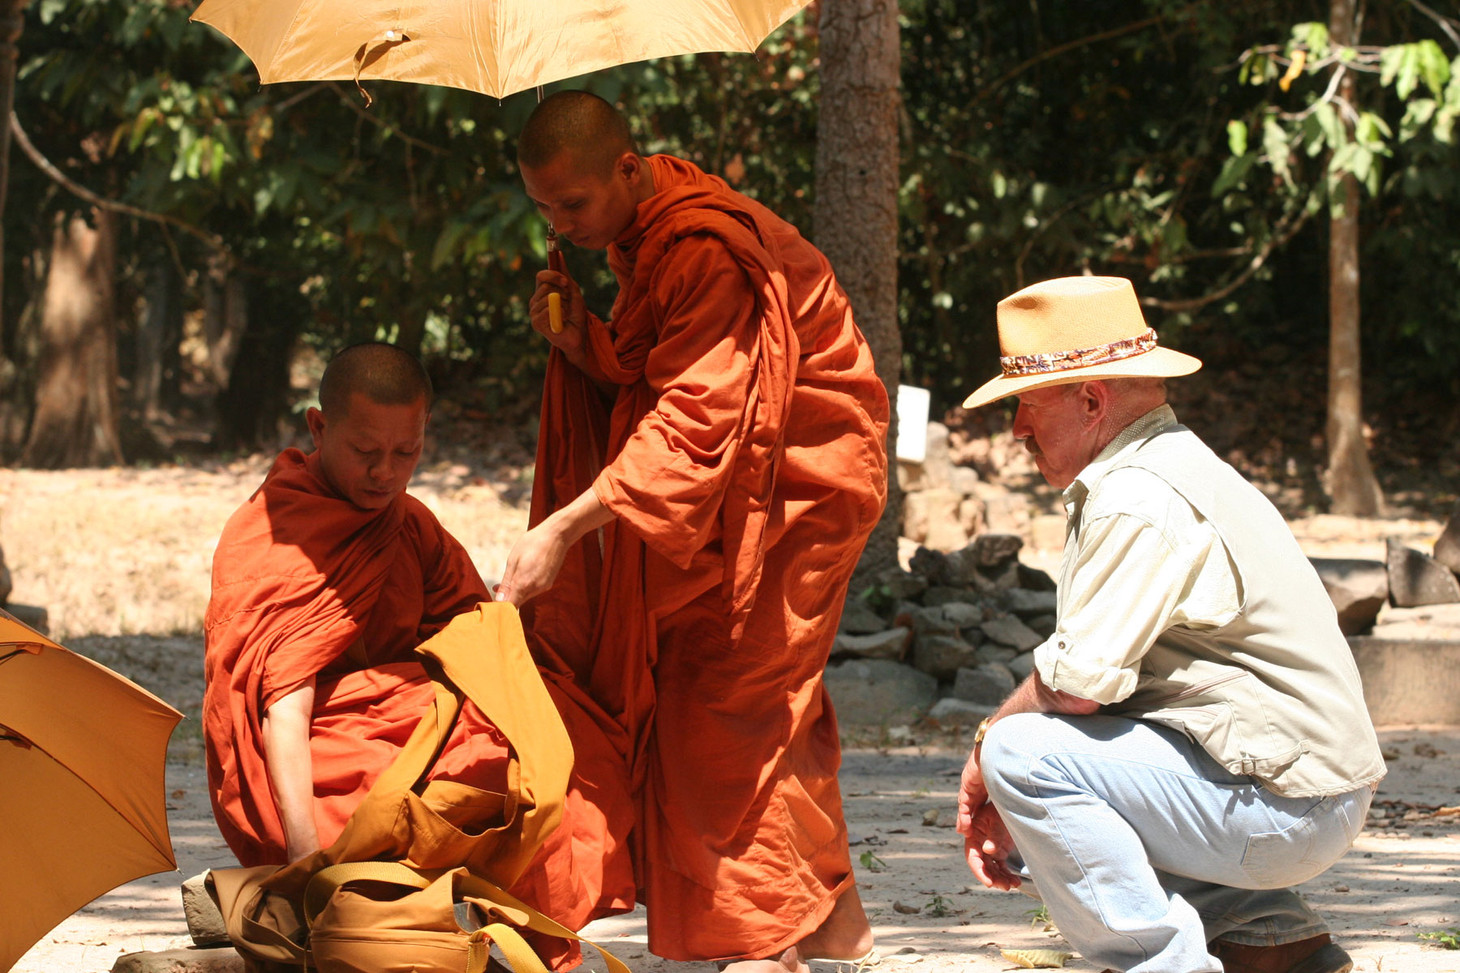 Interacting with buddist in Cambodia for my tv show 'Splash of Color' shown on Discovery channel.